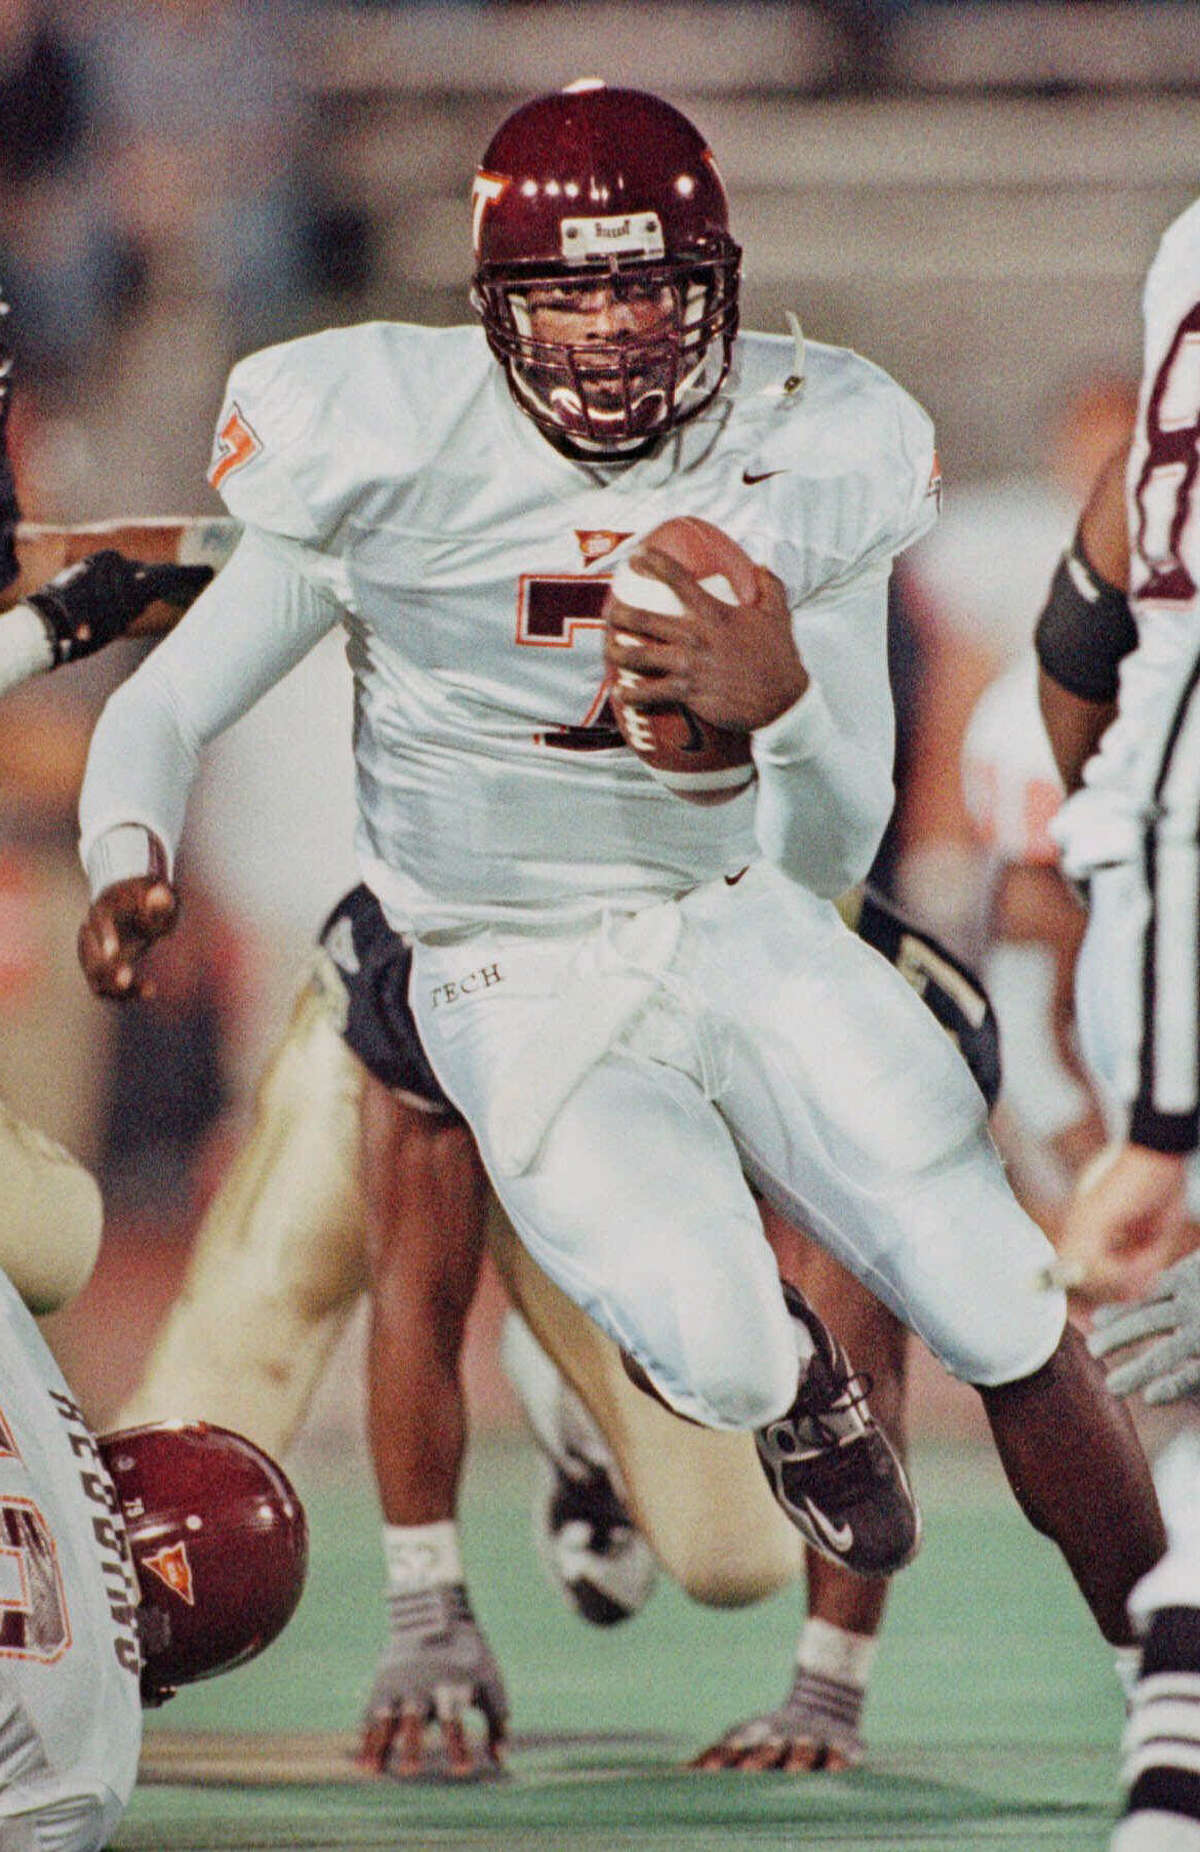 MICHAEL VICK, 1999 School, position: Virginia Tech, QB Heisman finish: Third Heisman winner: Ron Dayne, Wisconsin RB Why he was considered: Despite Dayne's runaway Heisman victory - he had more than 1,000 votes over second-place Joe Hamilton of Georgia Tech - Vick gave the country a taste of his highlight-reel talent, guiding the Hokies to a BCS title-game loss to Florida State. Why he didn't win: Dayne finished a decorated career by smashing Ricky Williams' NCAA career-rushing mark with 6,397 yards and leading the Badgers to the Rose Bowl.